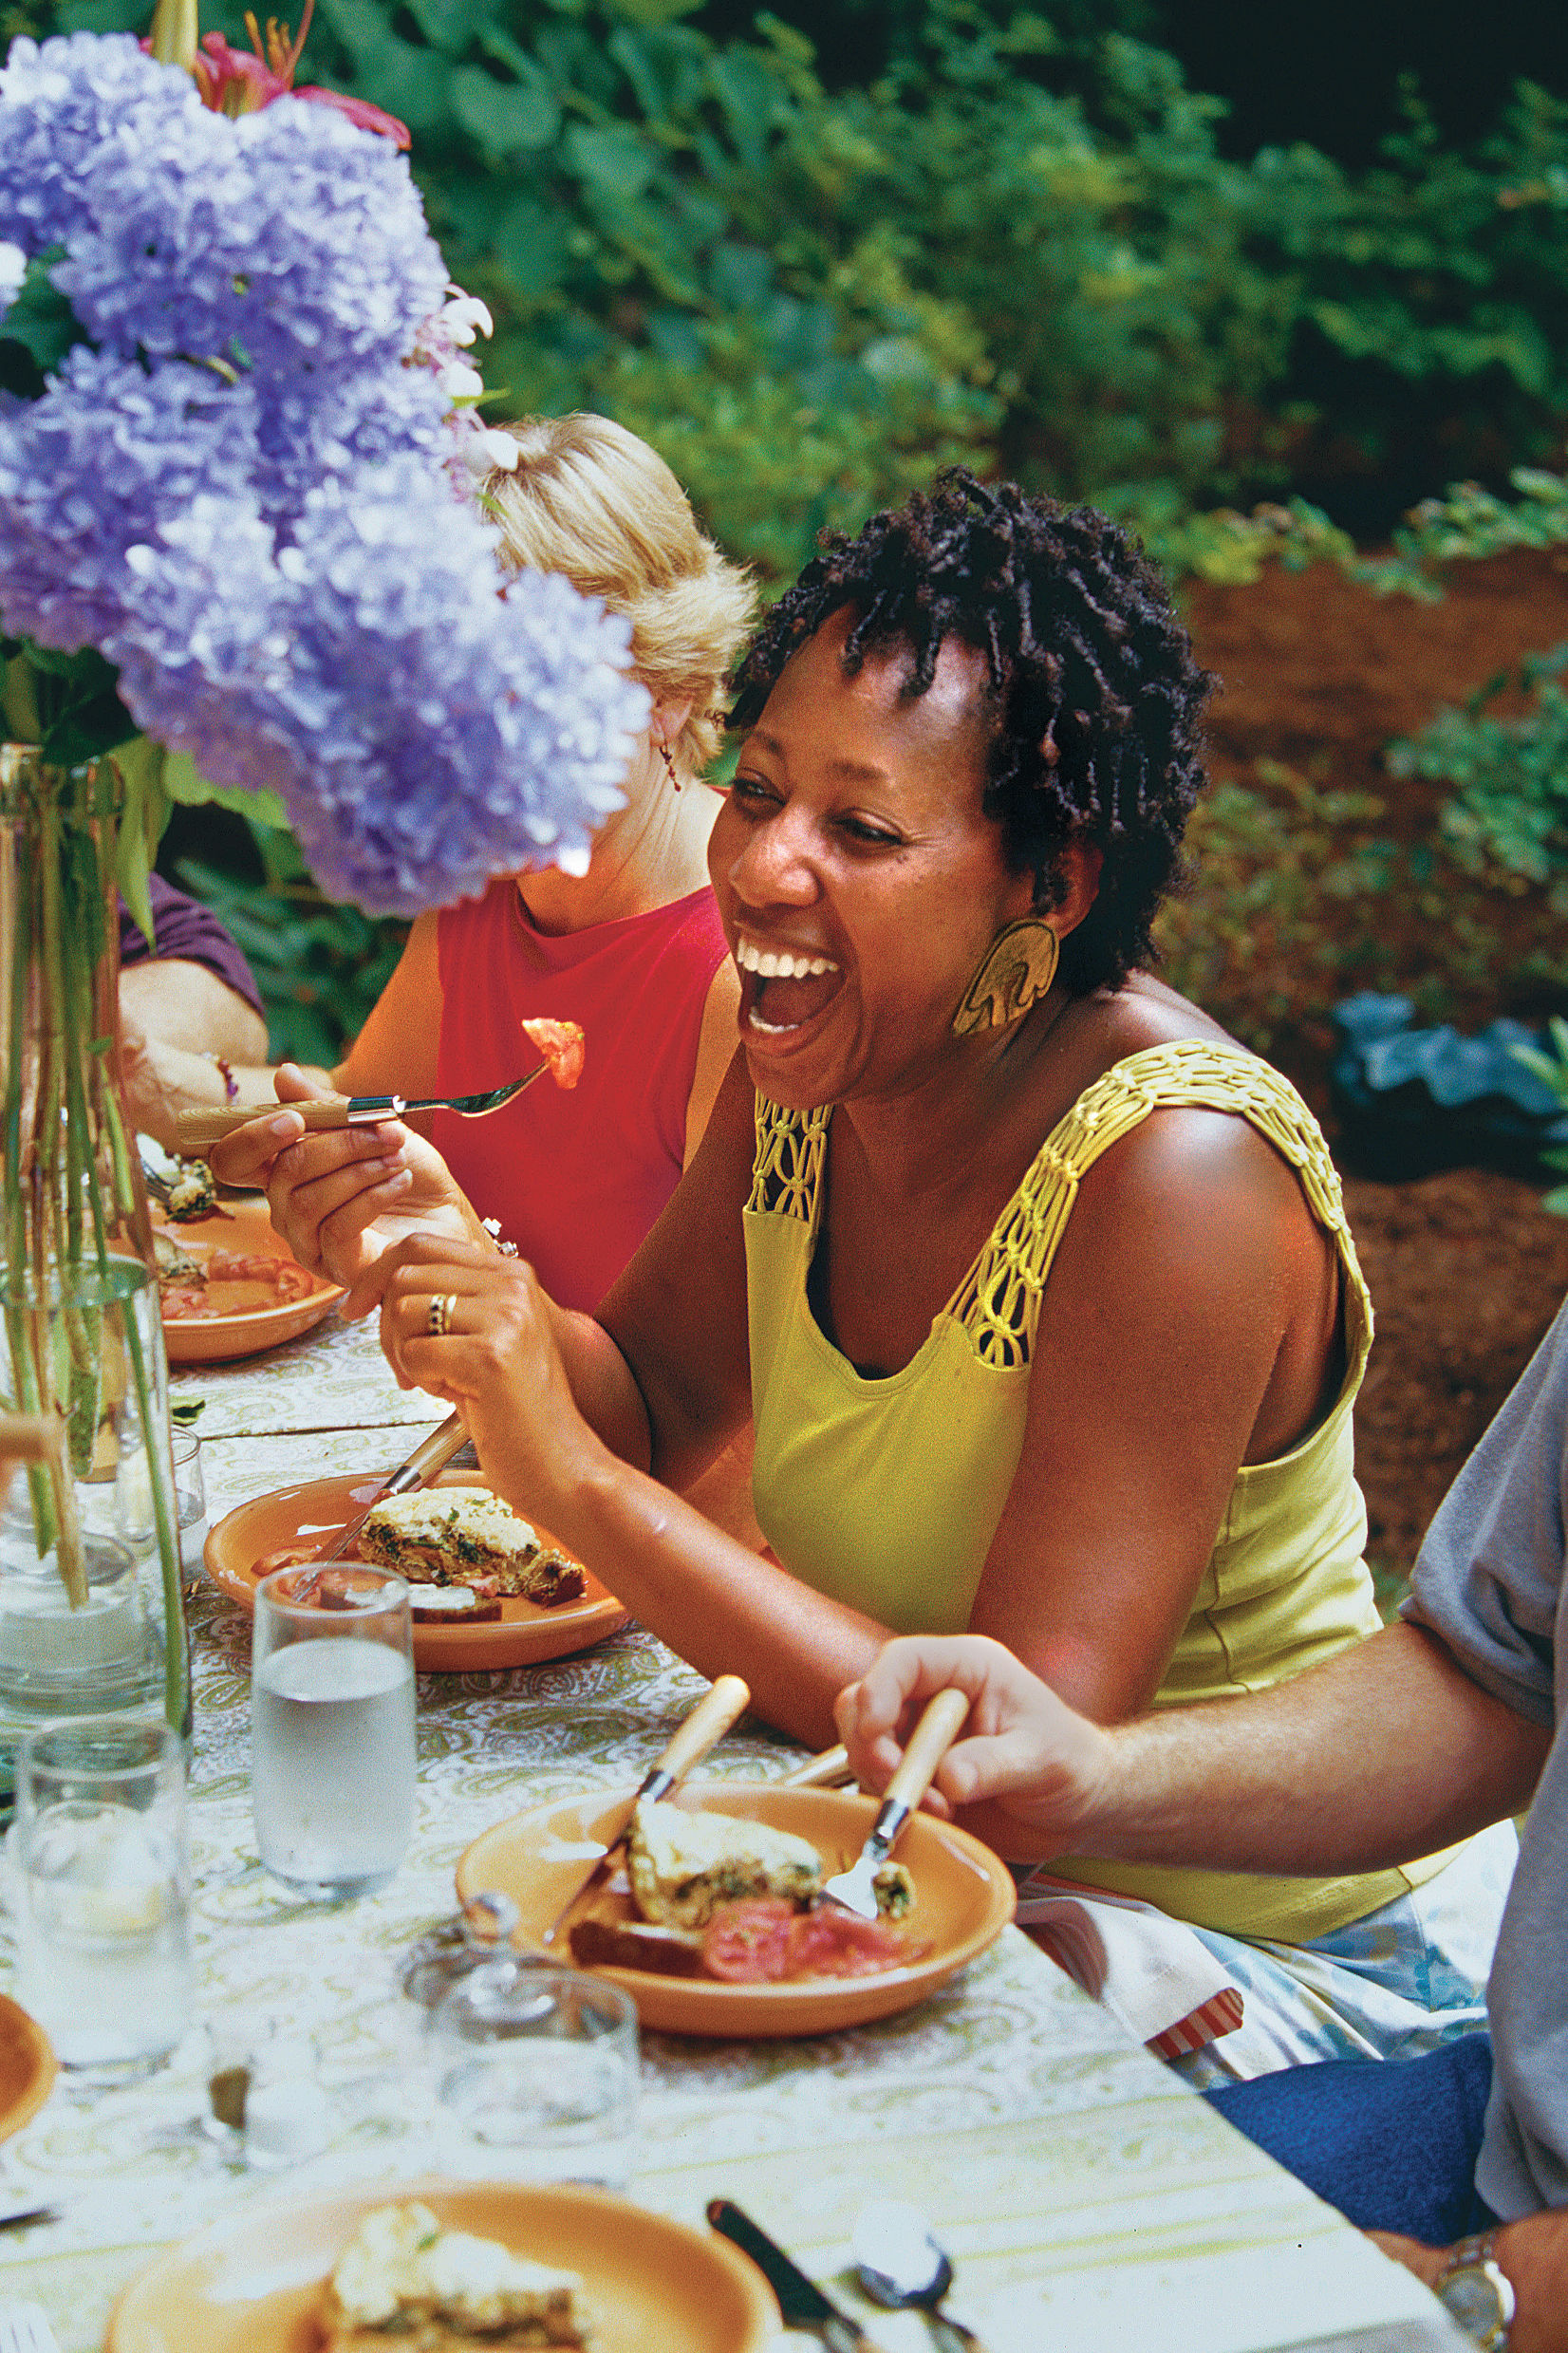 Host a Progressive Garden Party